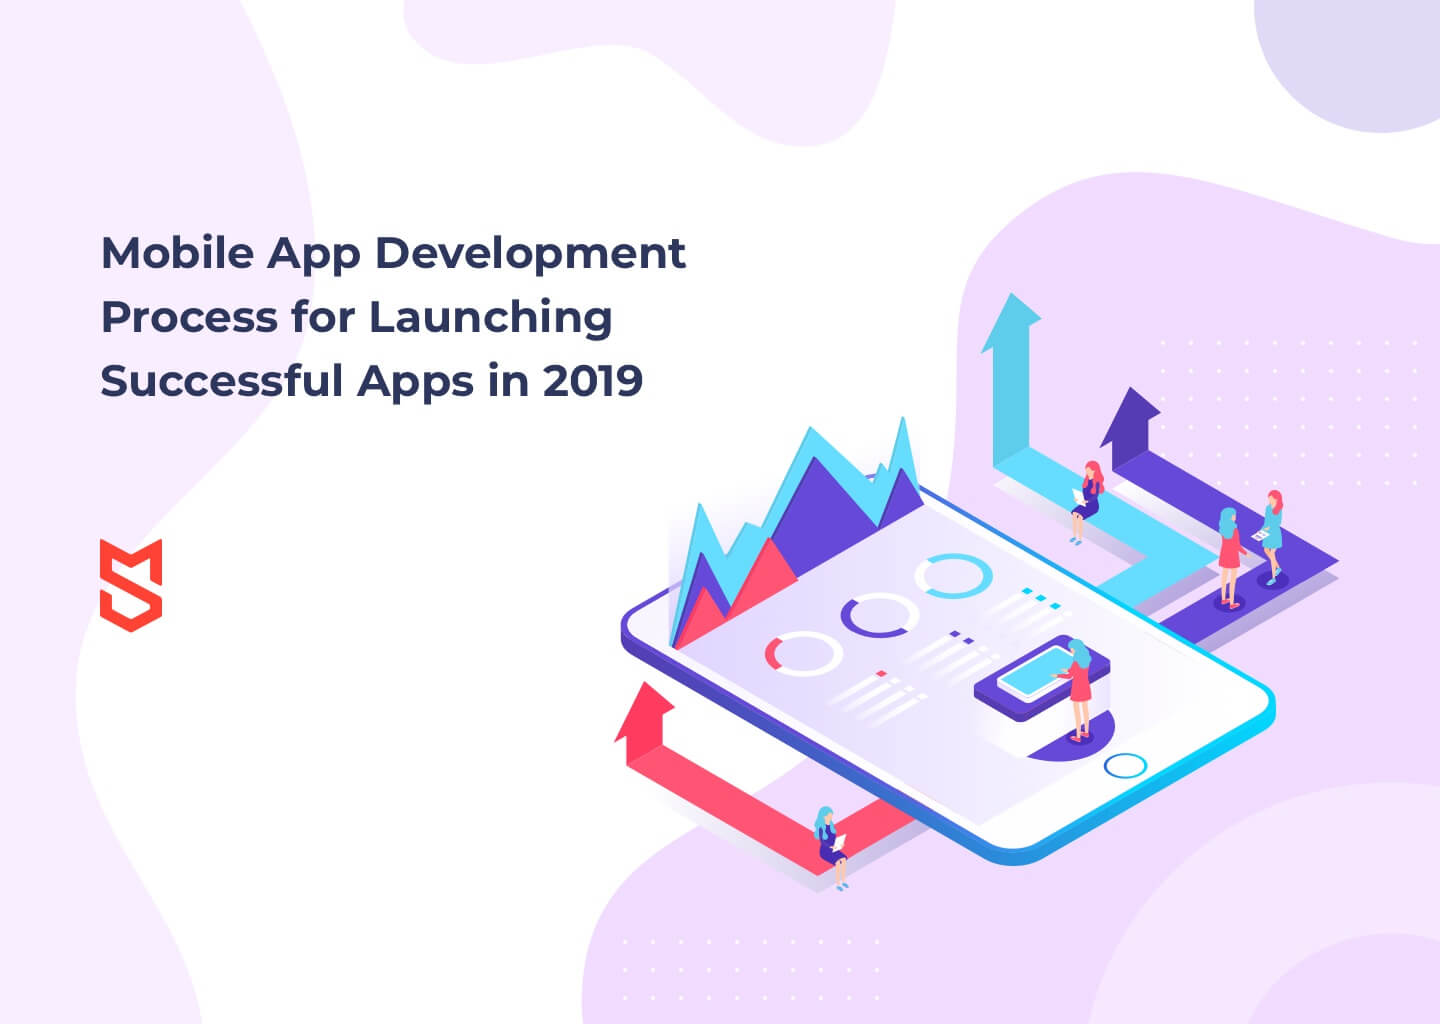 Mobile App Development Process for Launching Successful Apps in 2019